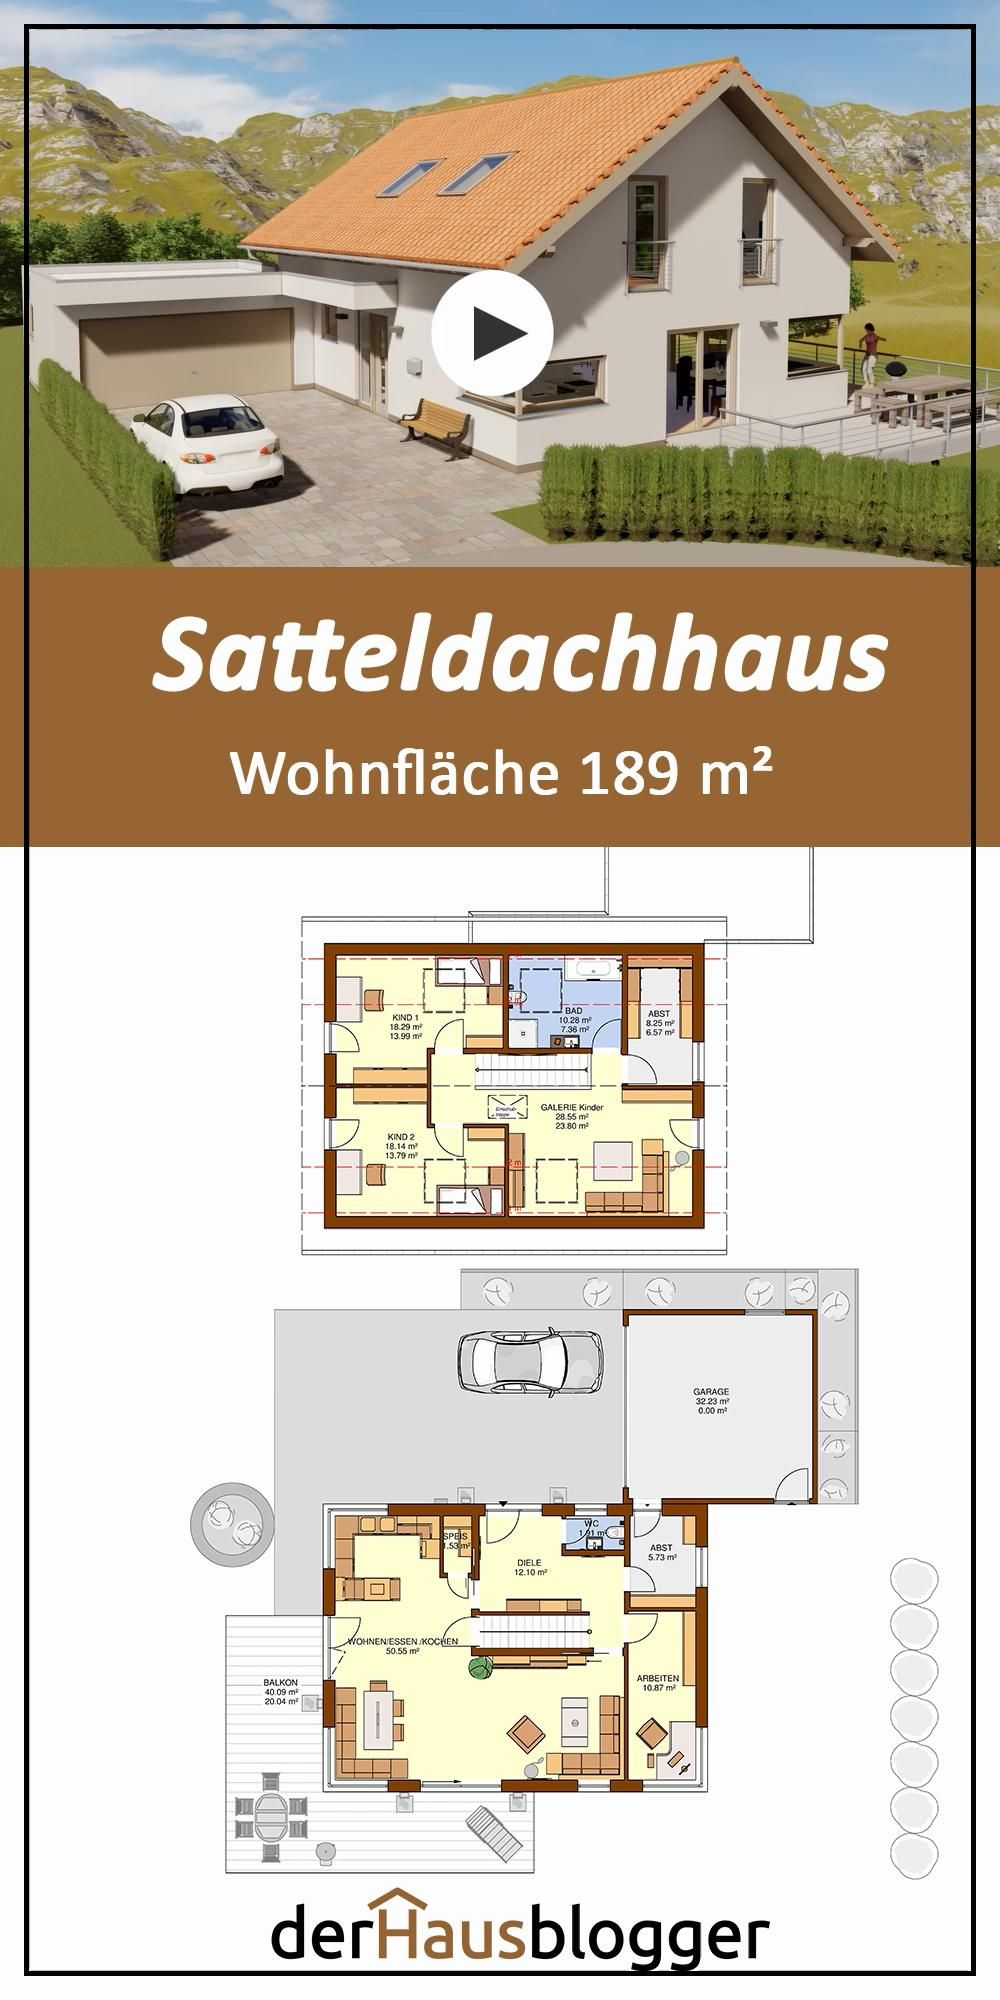 Photo of Satteldachhaus 189m2